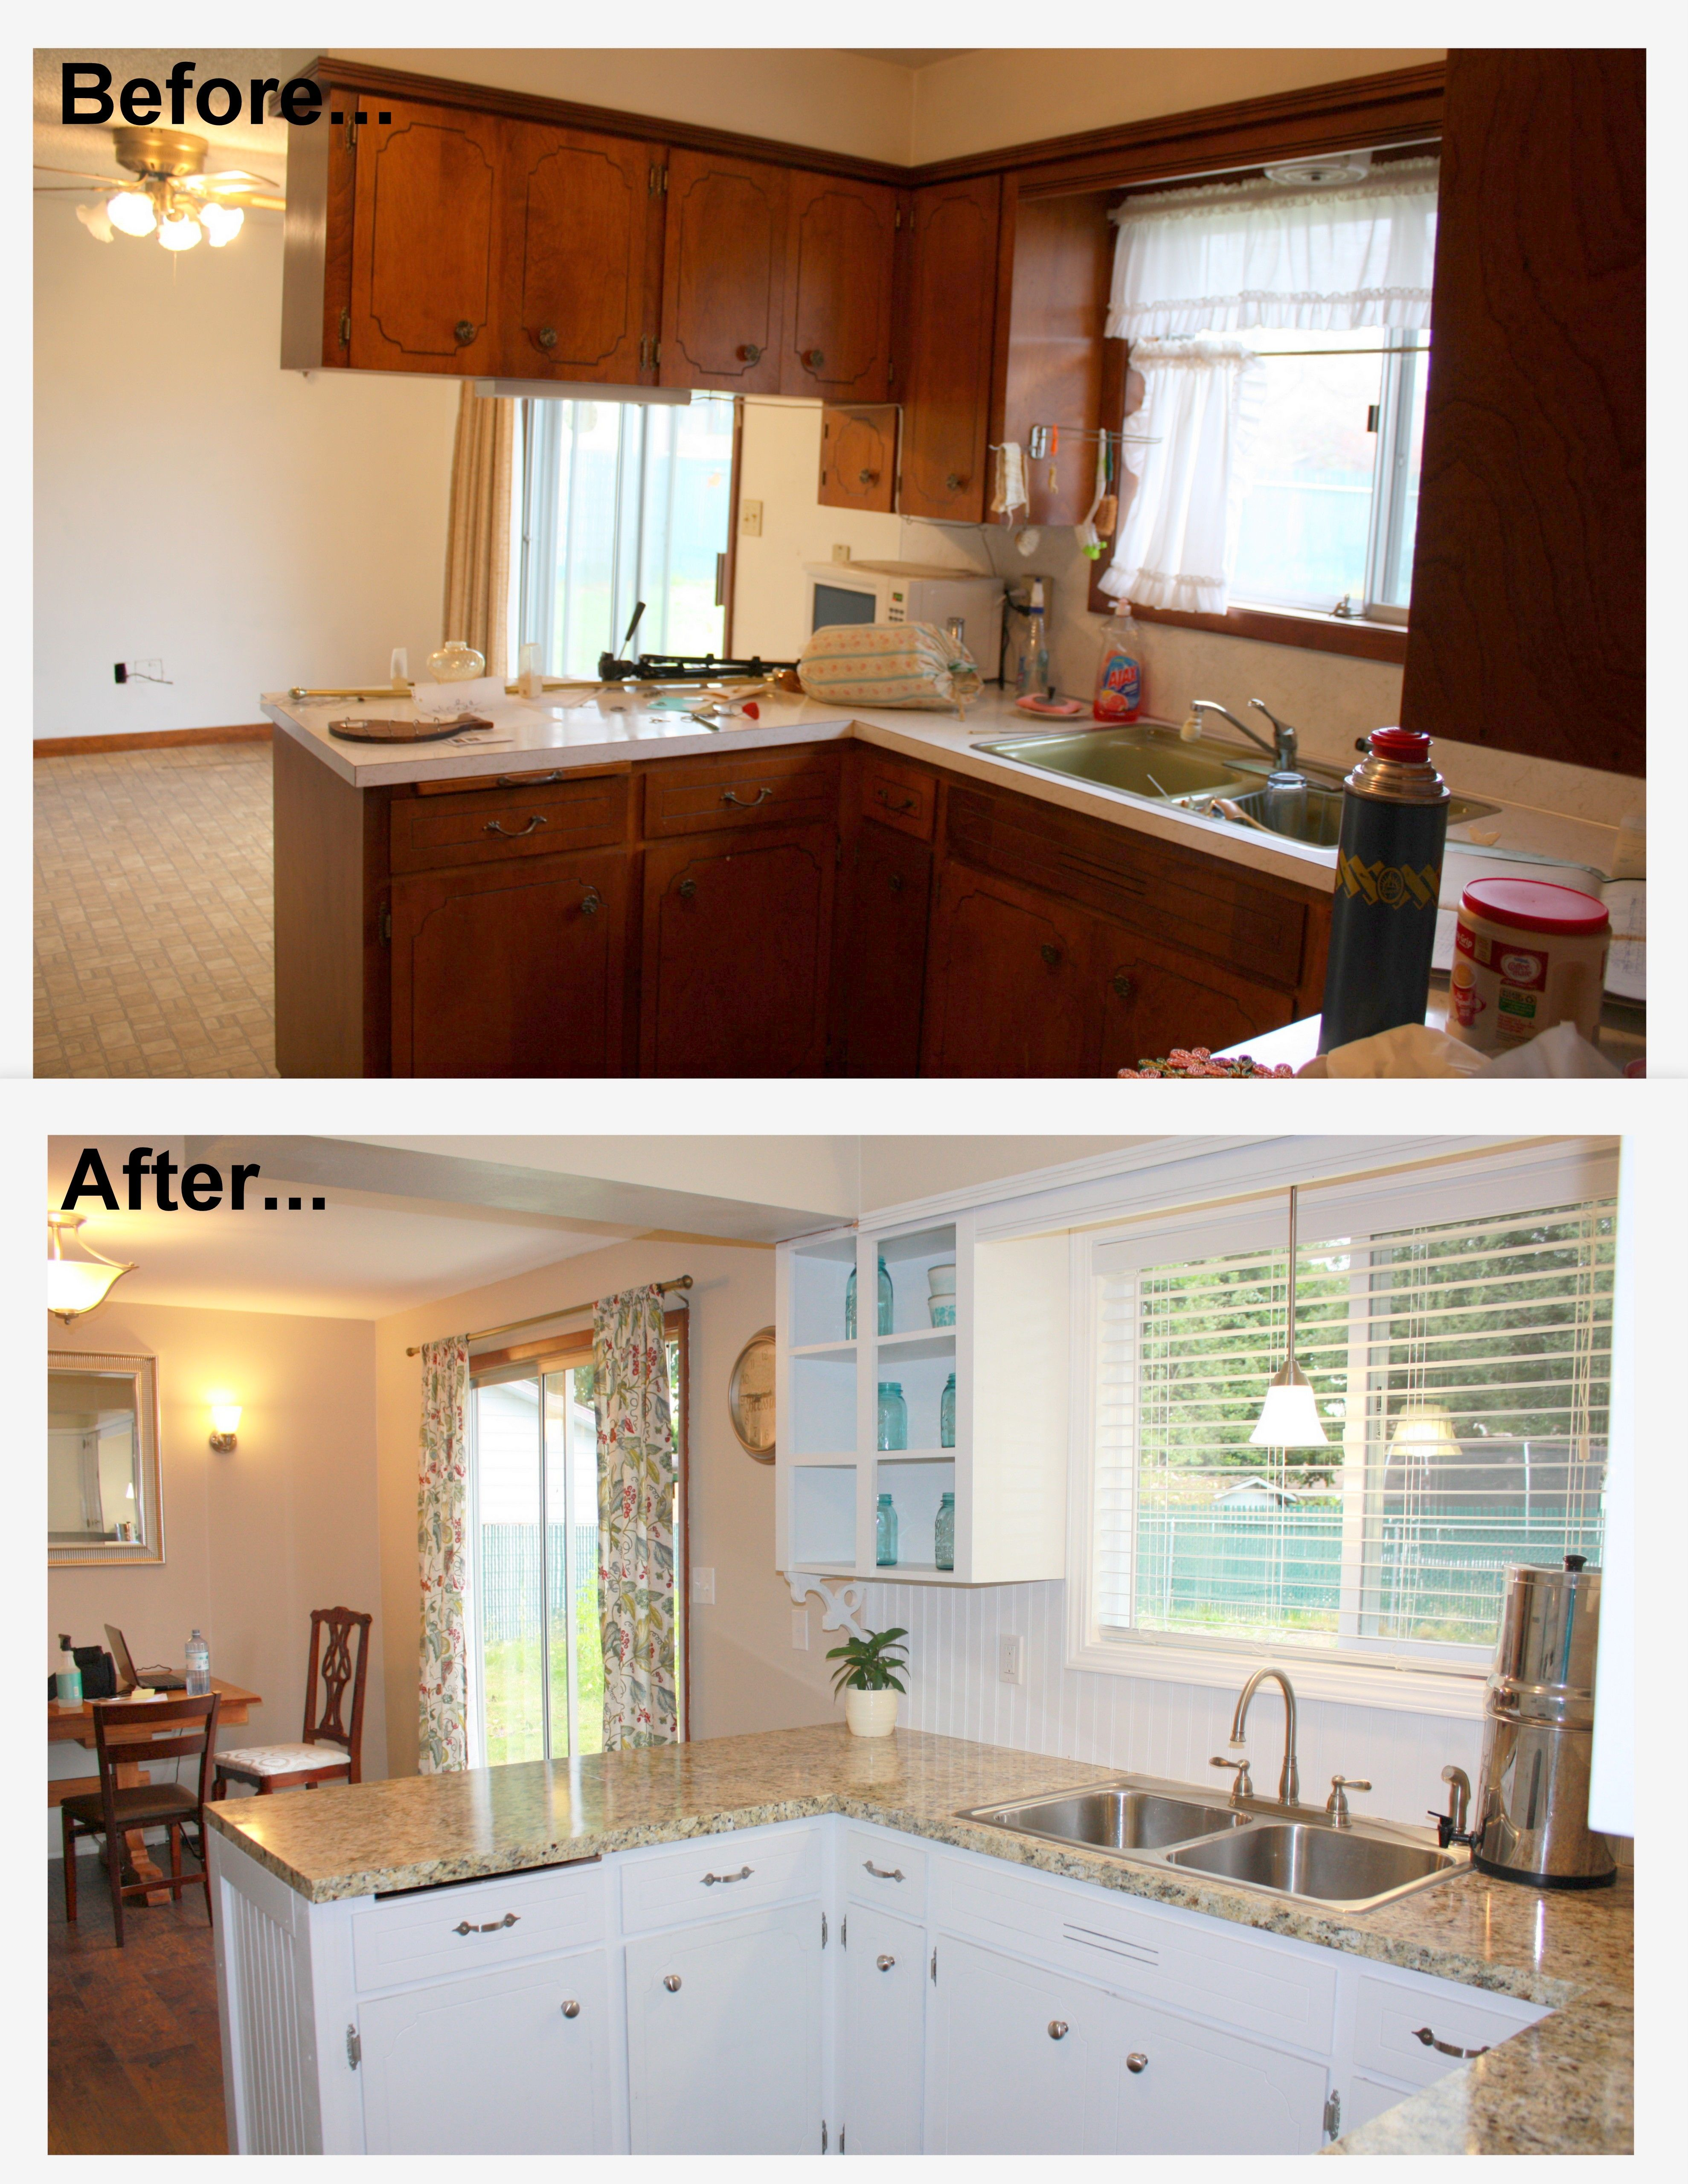 1960 39 S Kitchen Makeover Remodel Before And After Hardwood